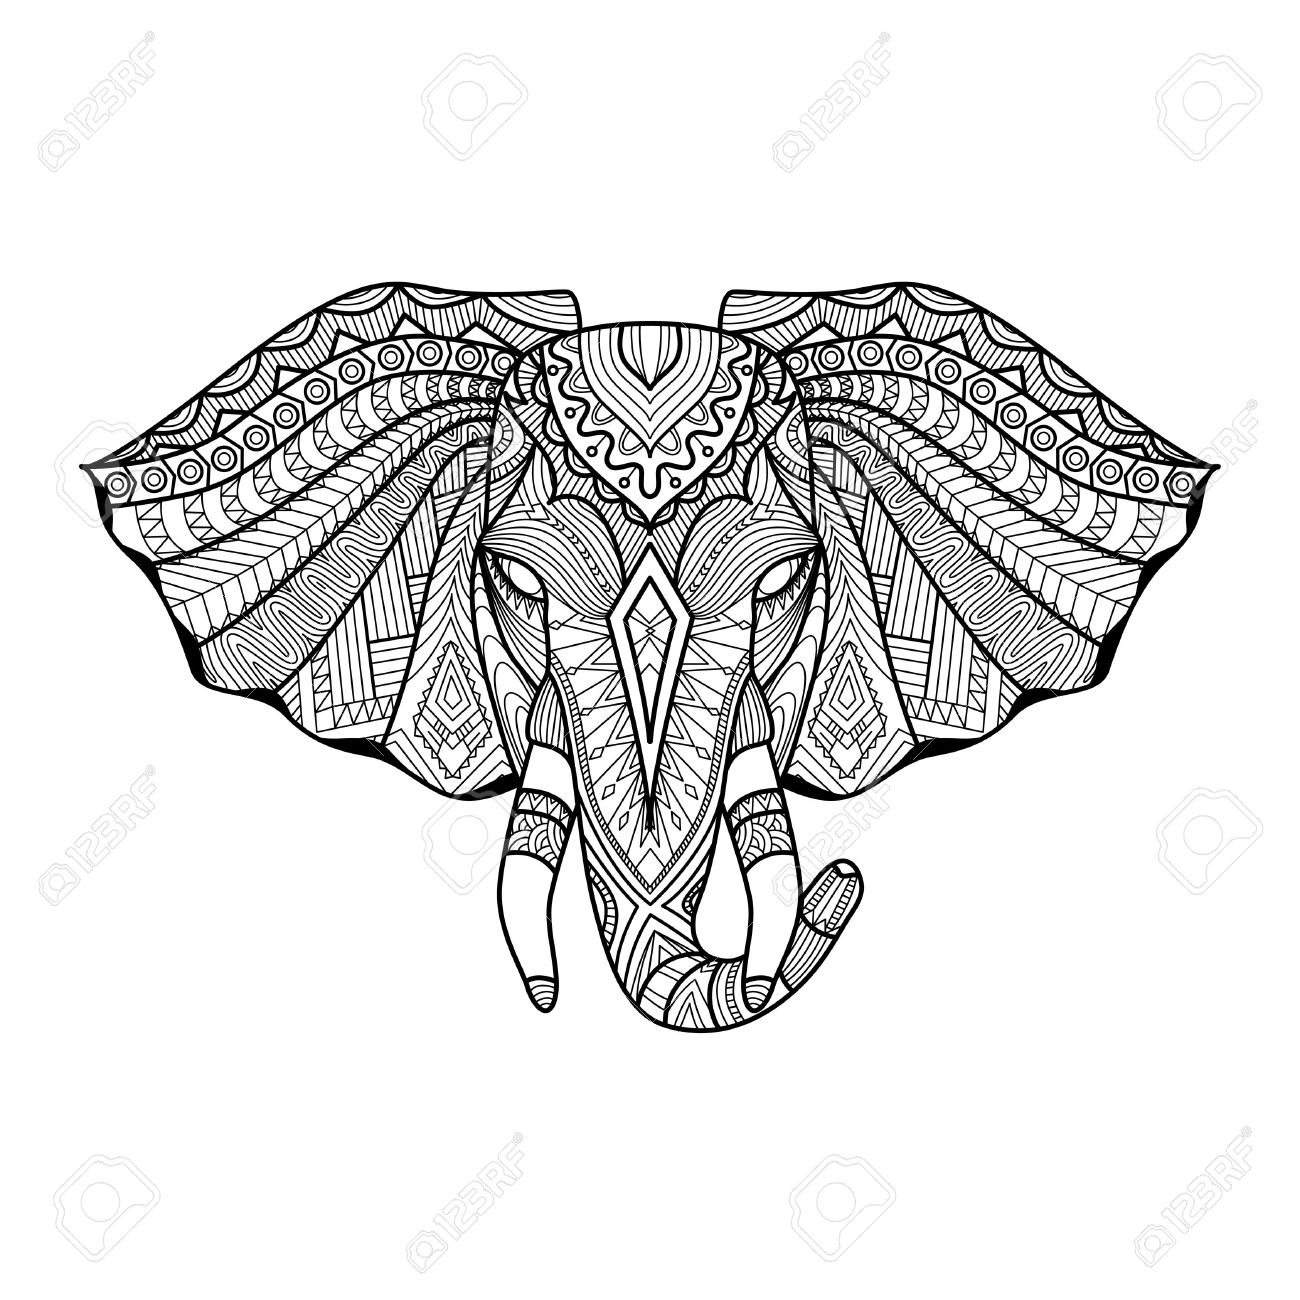 Drawing Unique Ethnic Elephant Head For Print Patternlogoiconshirt Design